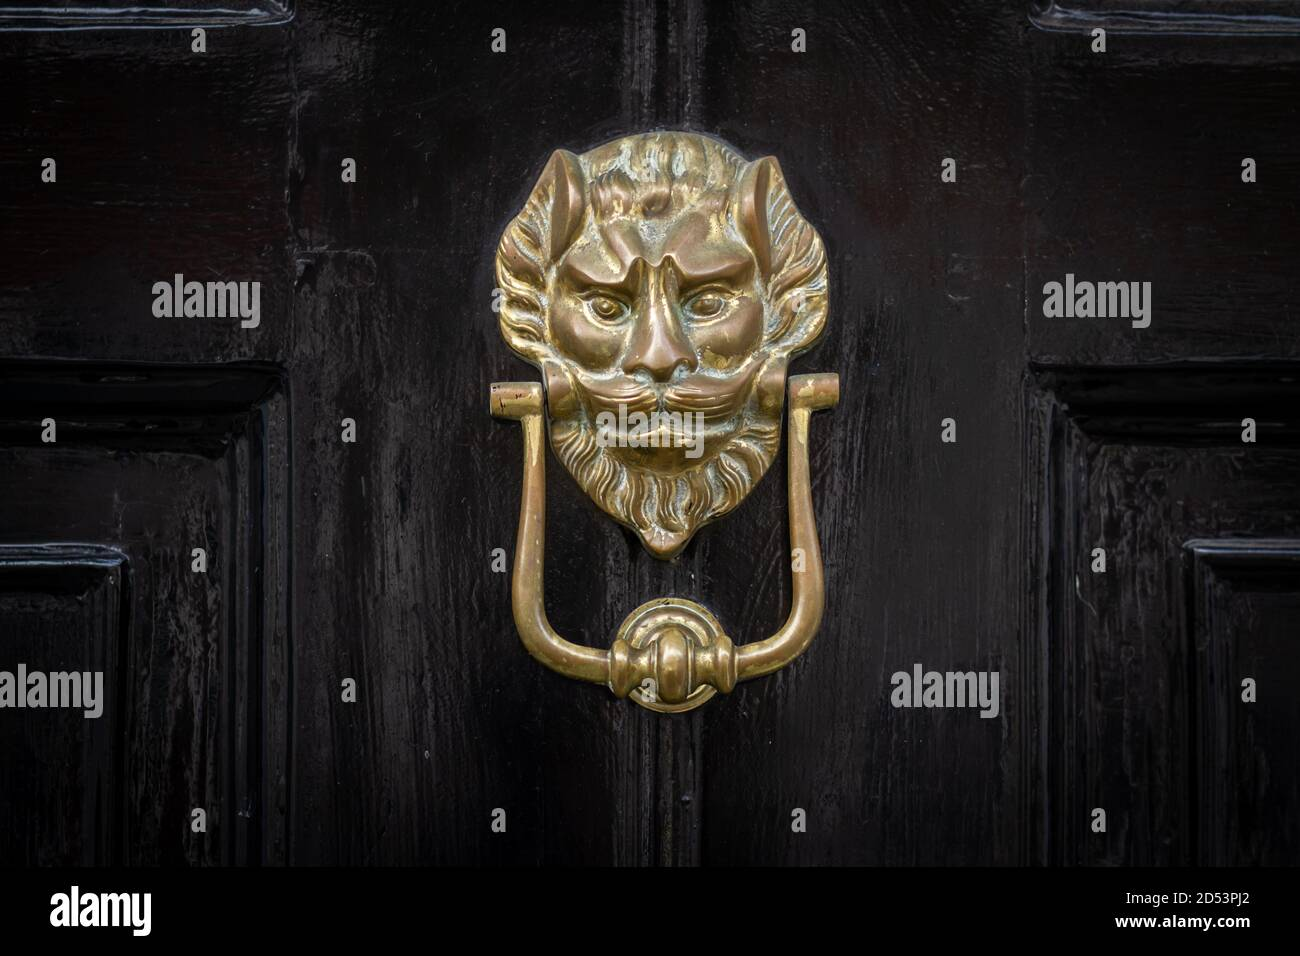 Elaborate Door Frame High Resolution Stock Photography And Images Alamy